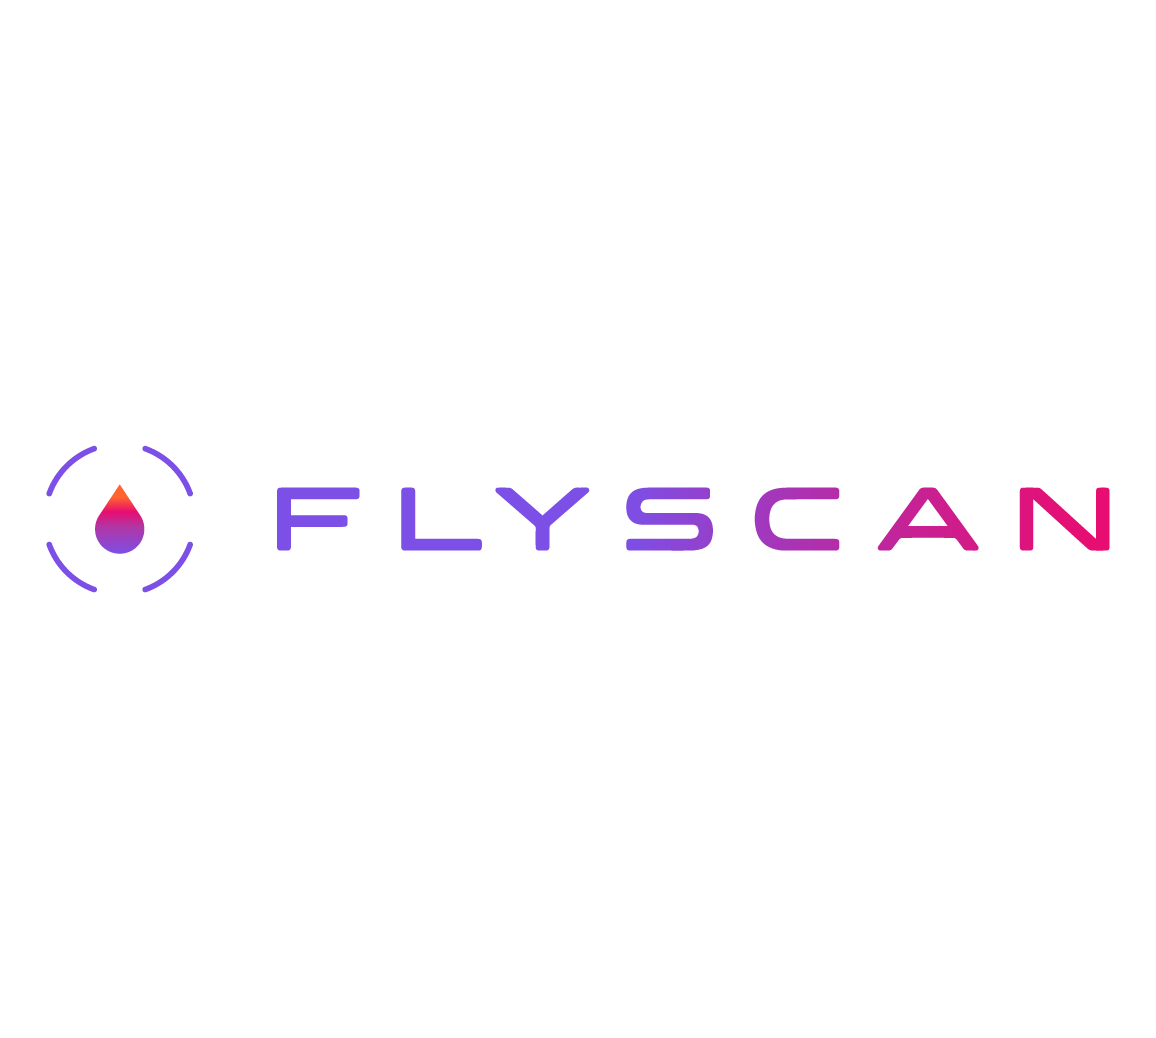 Flyscan Systems